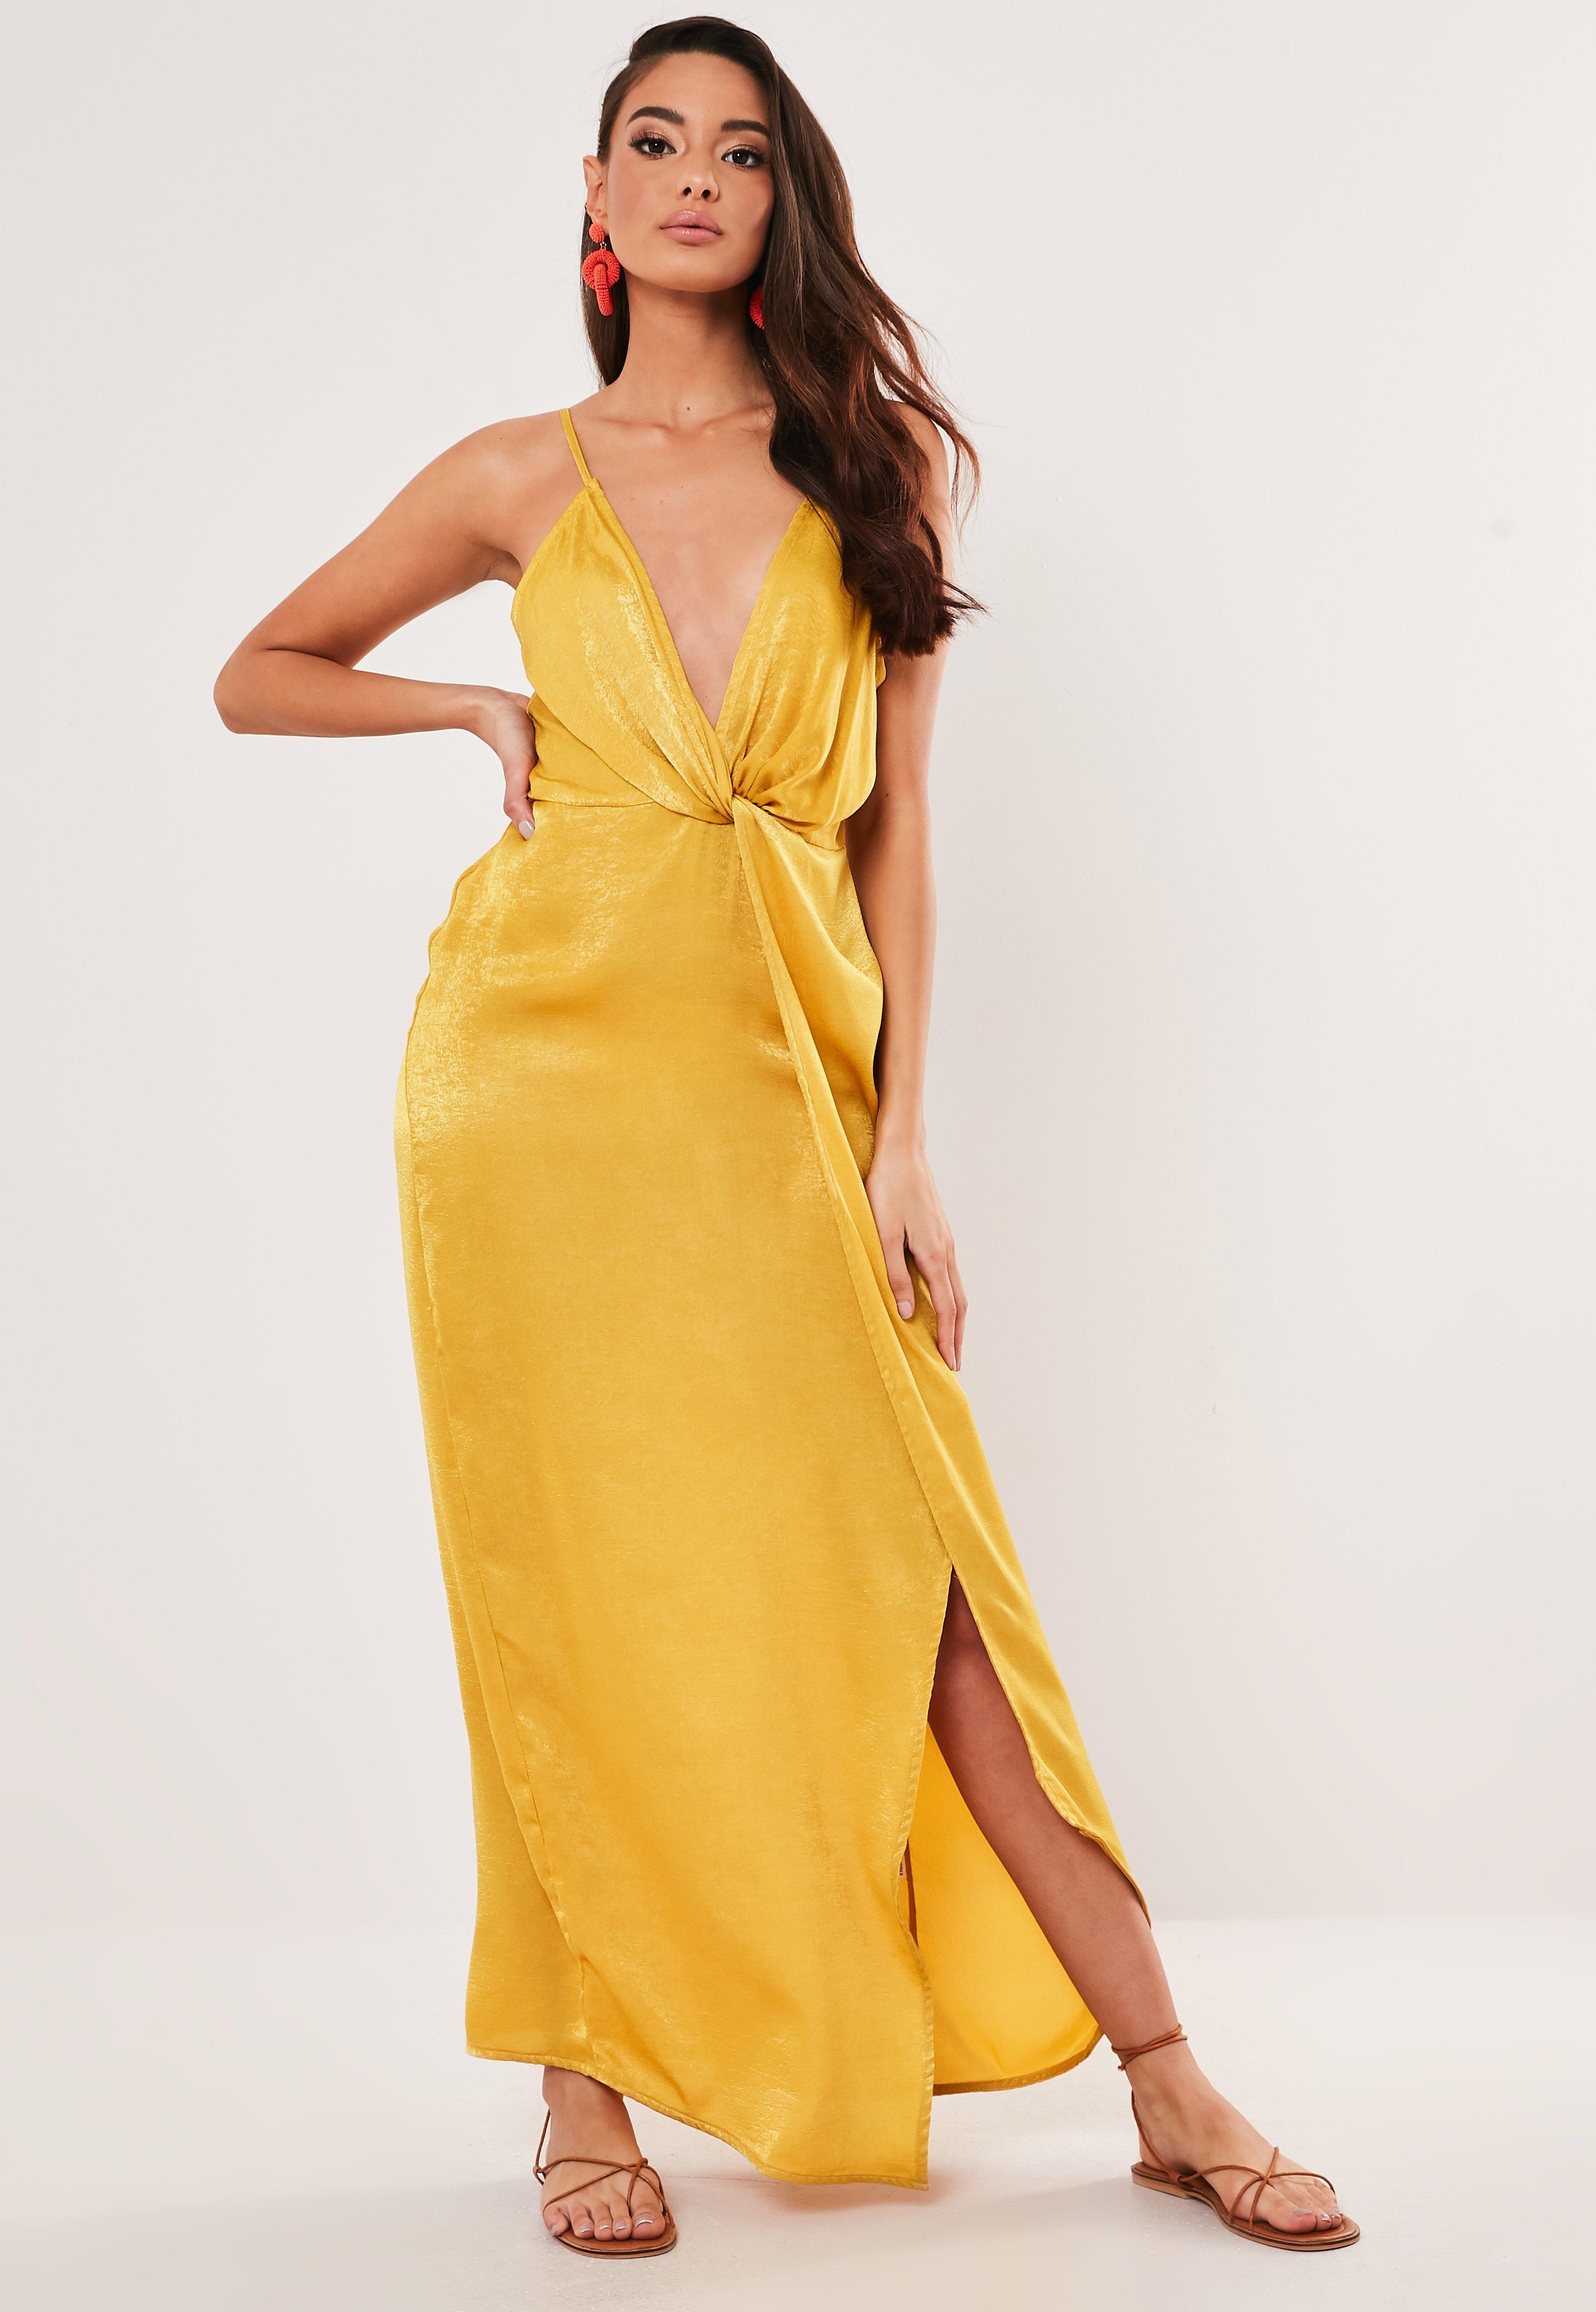 cee7a751f024 Satin Dresses | Shop Silky Dresses - Missguided